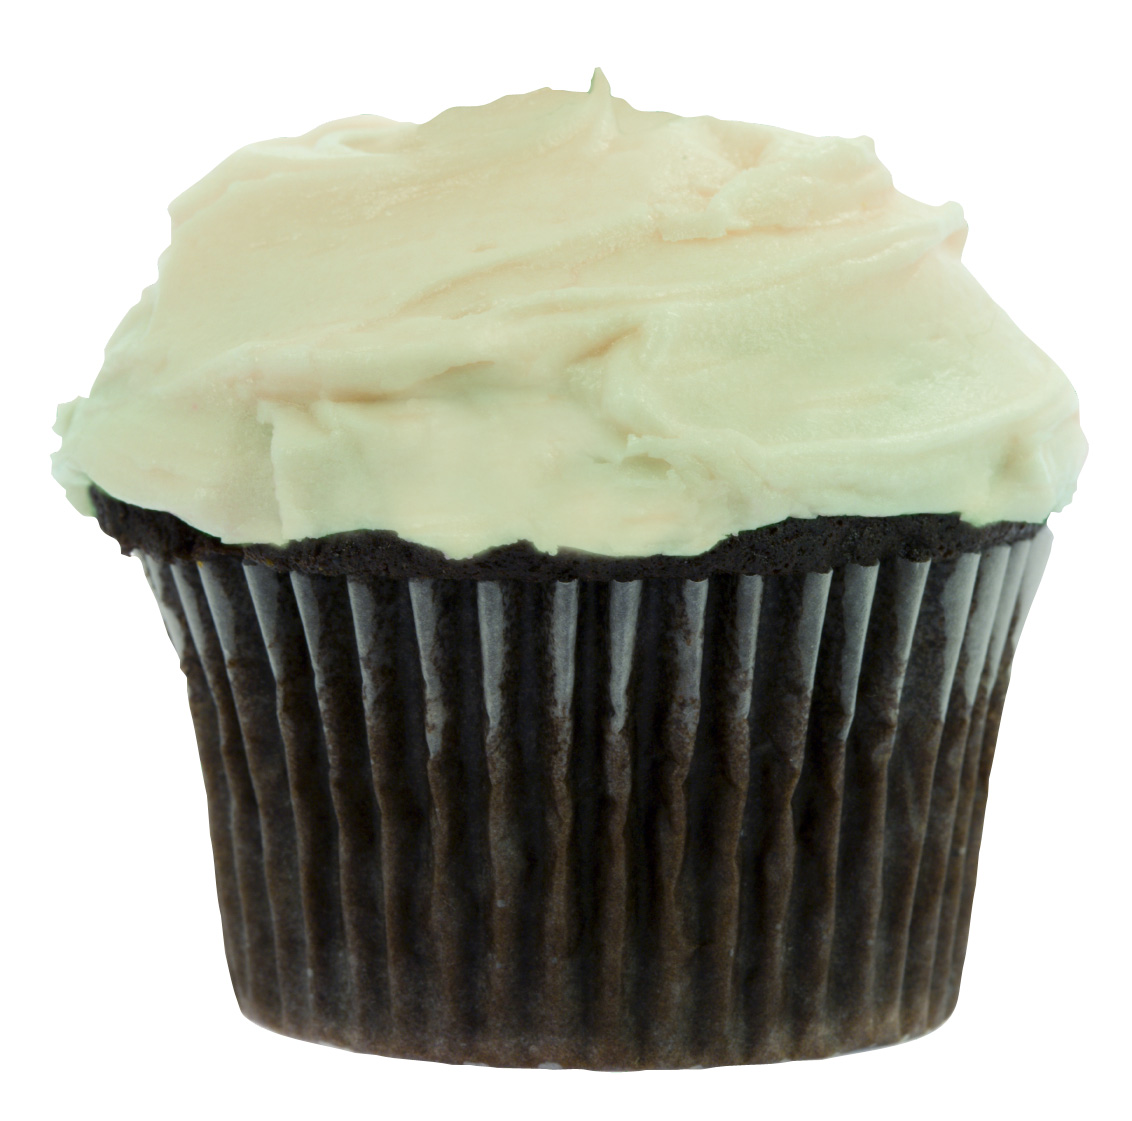 Gluten Free Cake Decorating Icing : Gluten-free cupcake decorating this Saturday